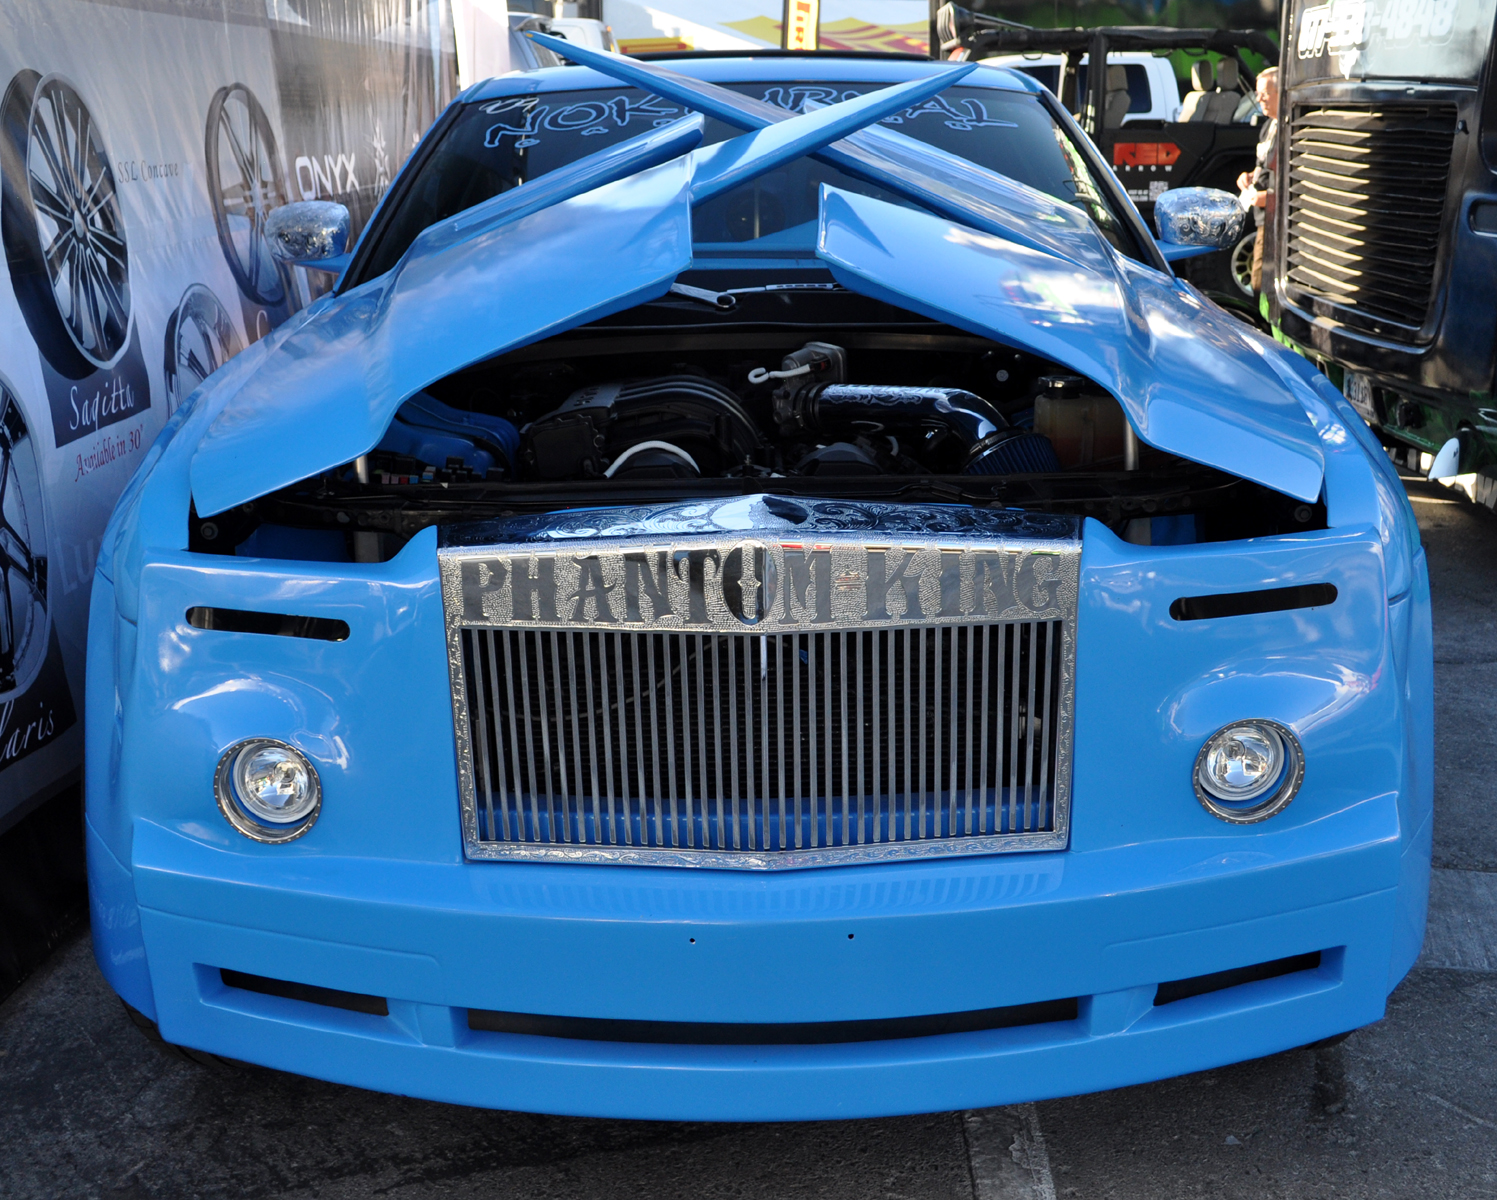 Most Unusual Chrysler 300 Made To Look Like A Rolls Royce Remade For Rap Star Cruising